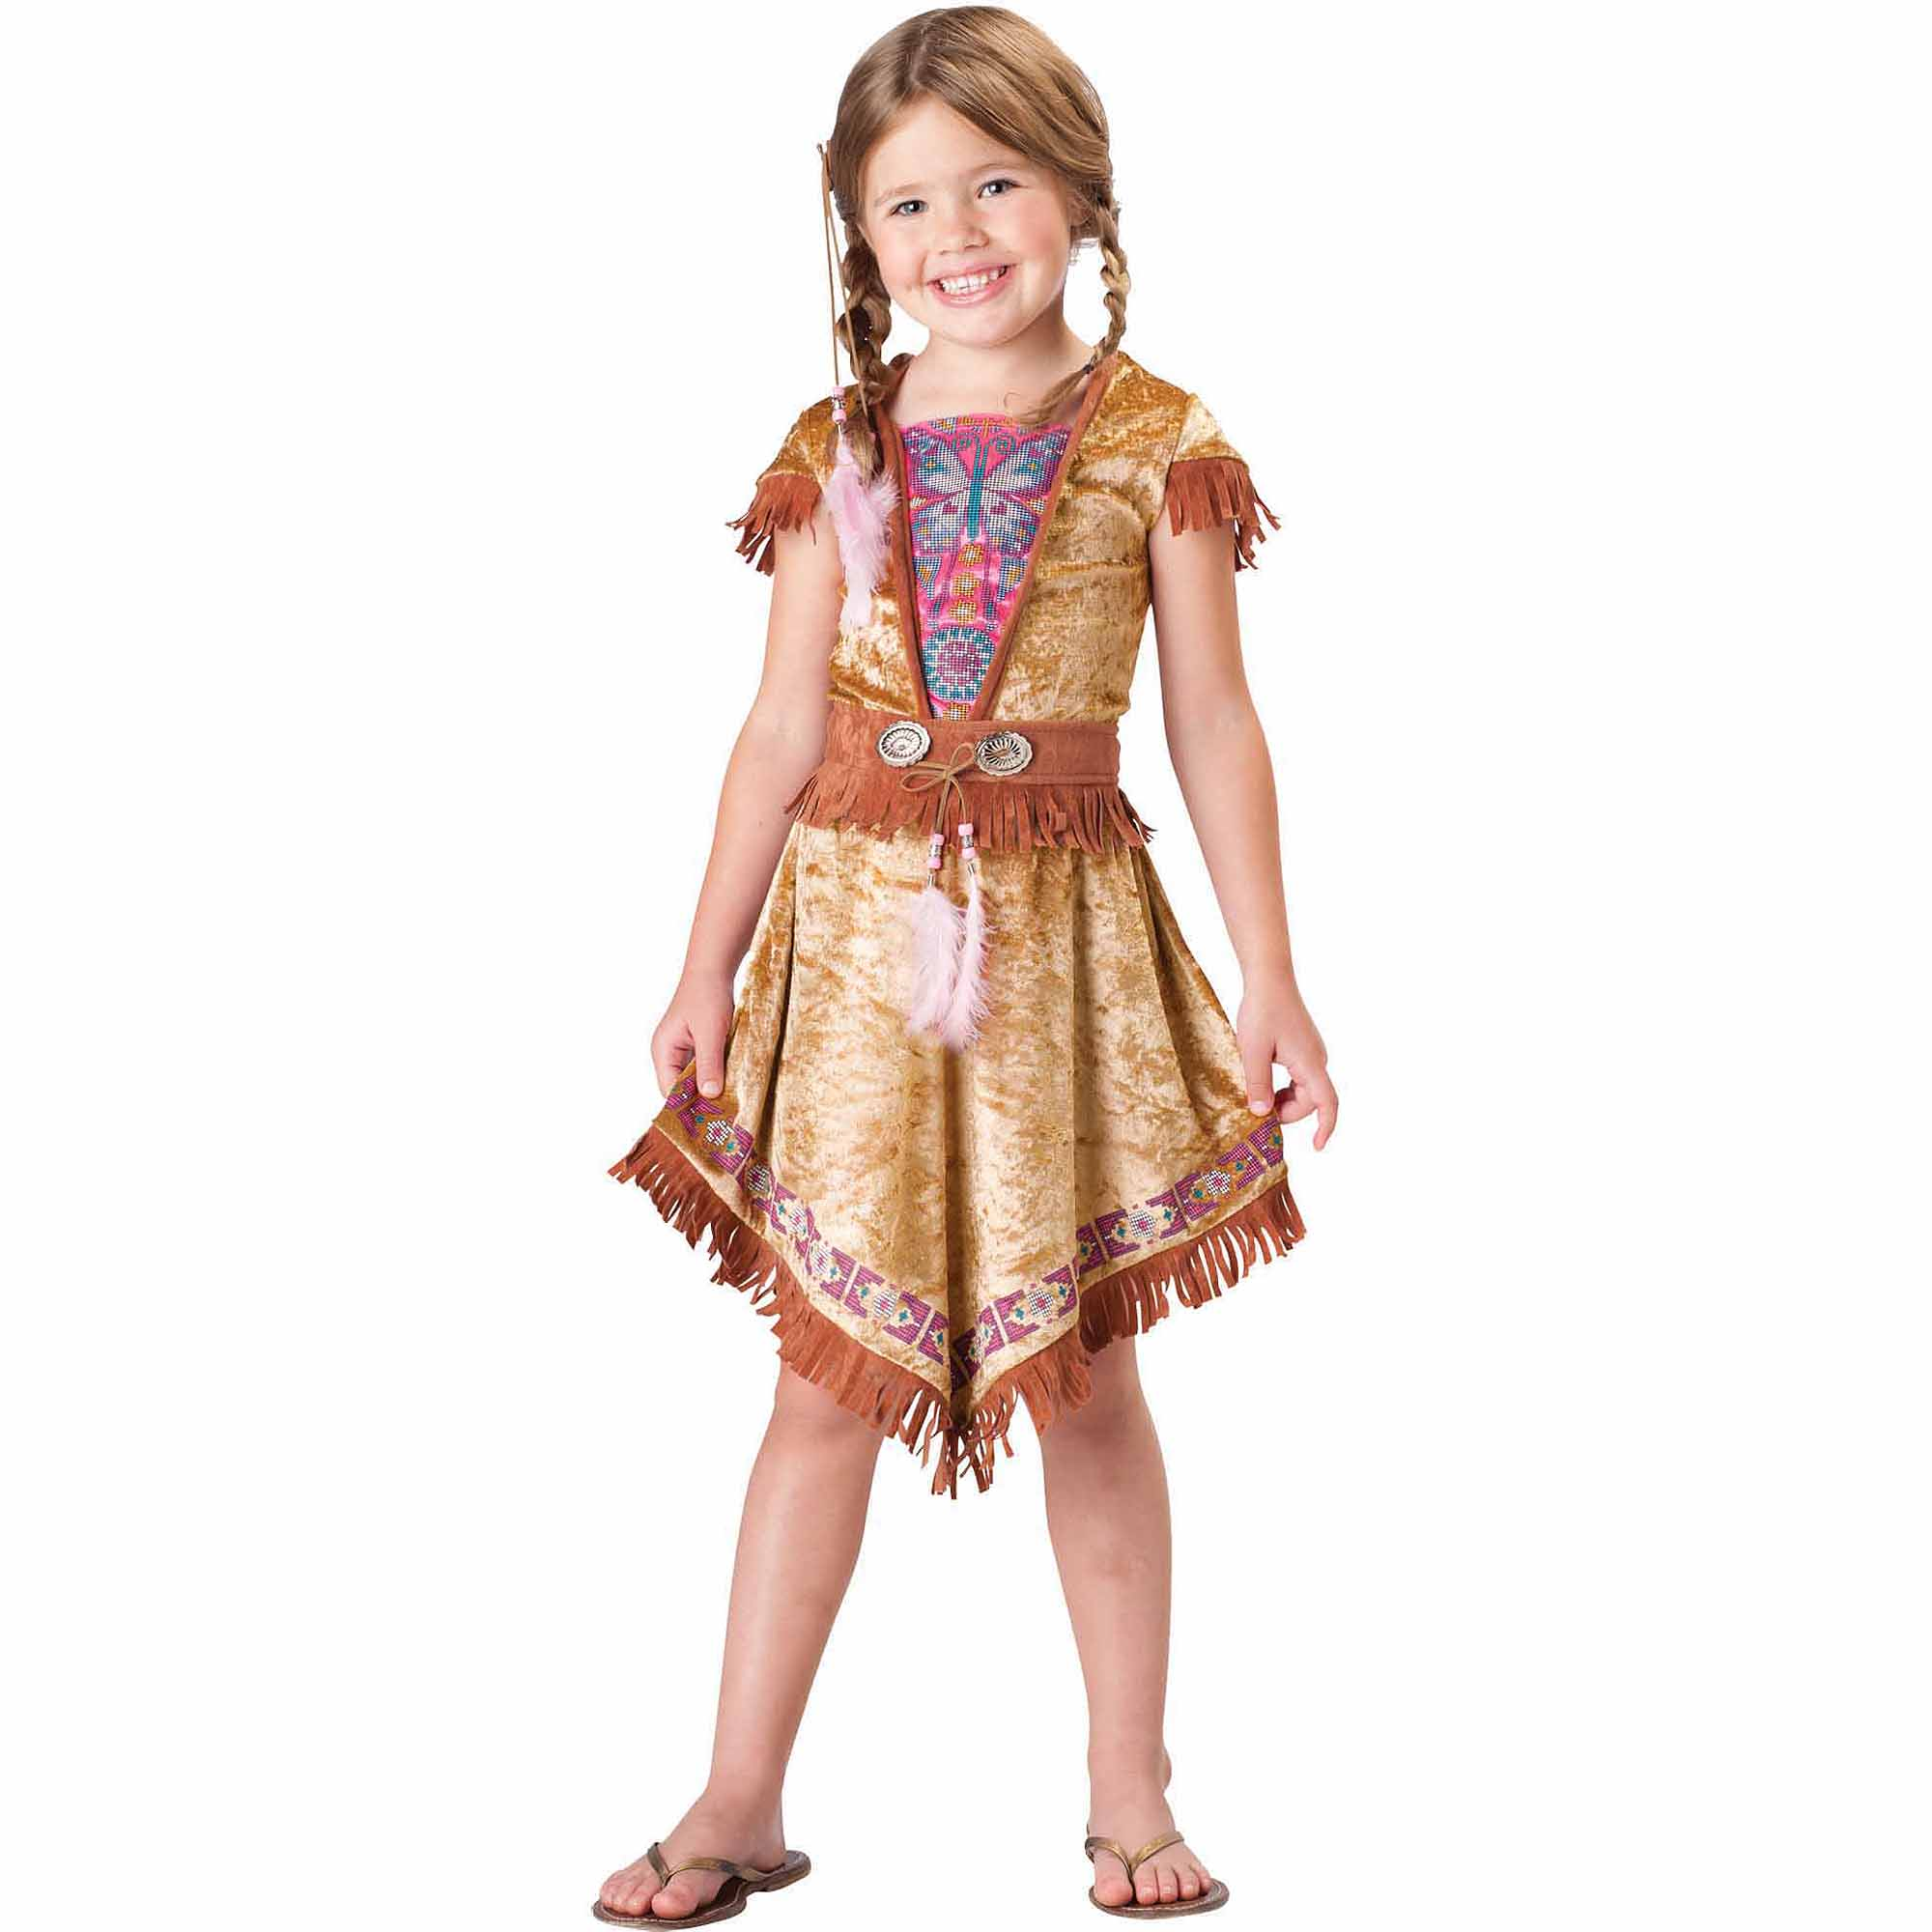 This native american maiden costume removed (has